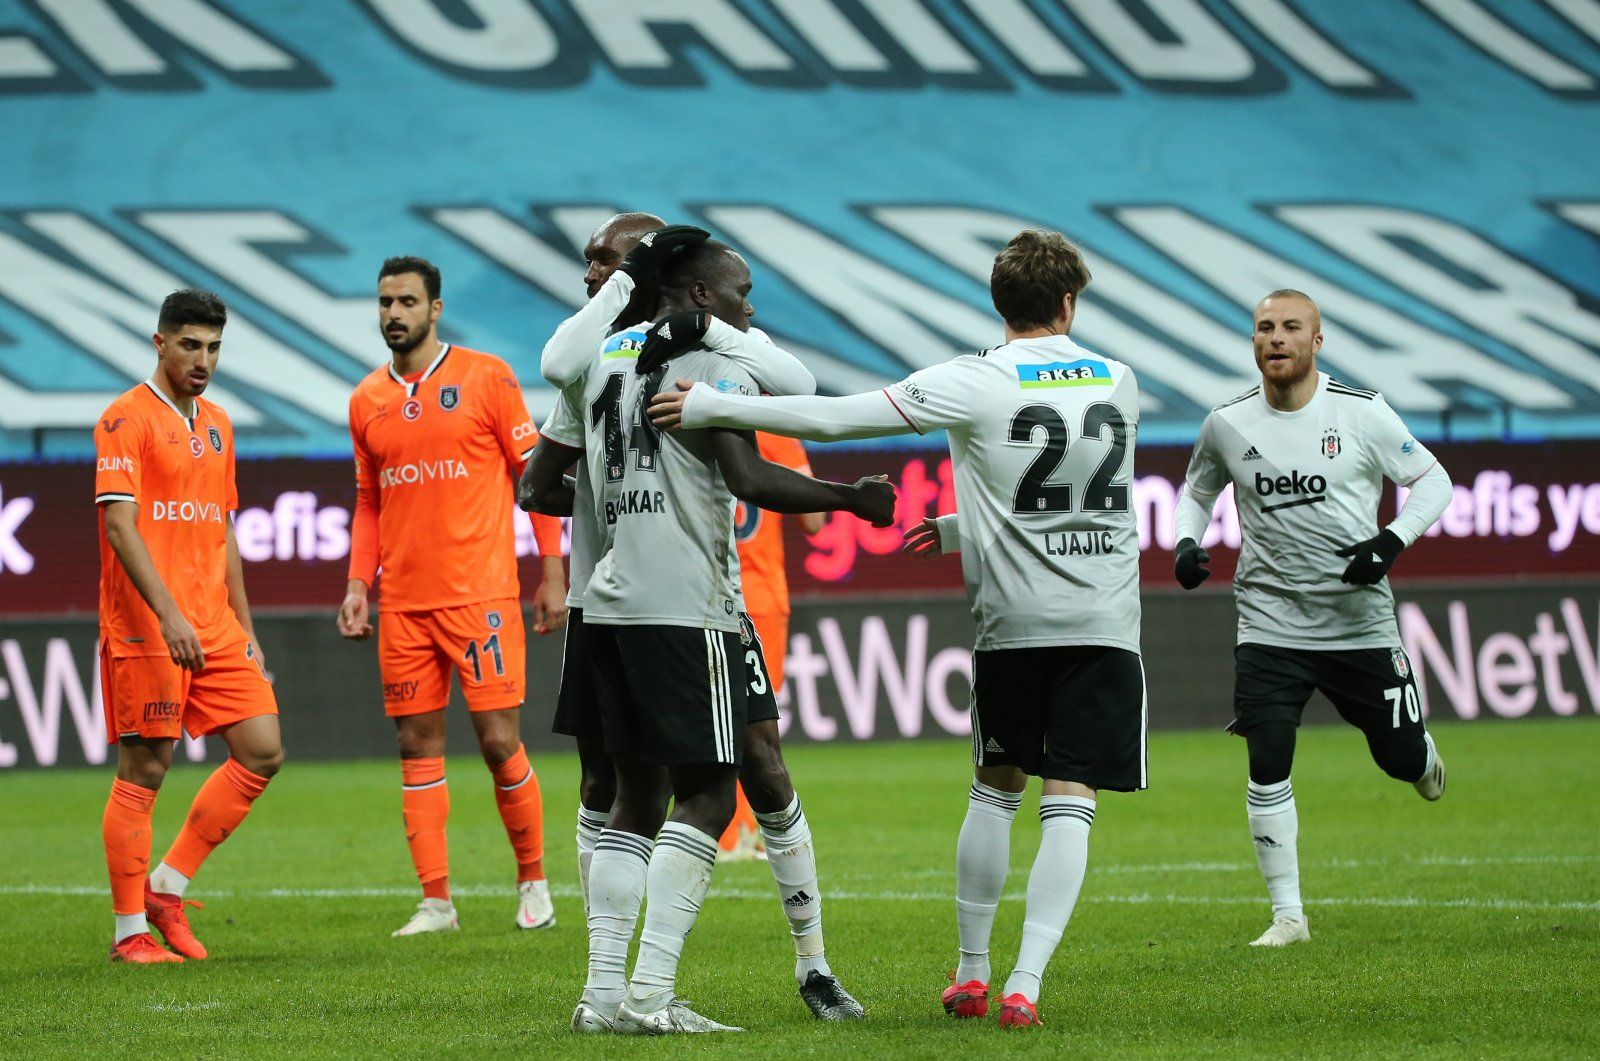 Beşiktaş players celebrate after Vincent Aboubakar scores his team's third goal in the 72nd minute during a Turkish Süper Lig match against başakşehir, at the Vodafone Park, in Istanbul, Nov. 21, 2020. (AA Photo)